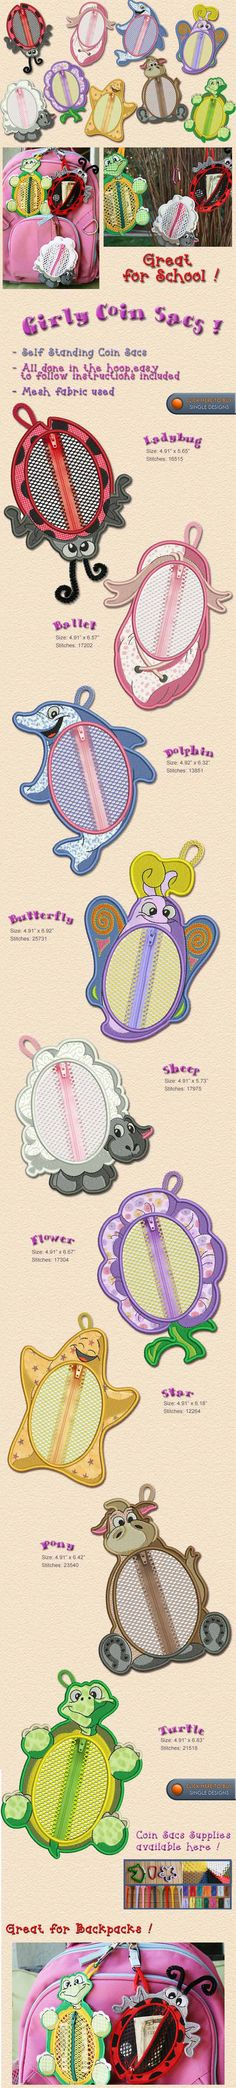 Girls,Toys, school tag, Embroidery Designs Free Embroidery Design Patterns Applique